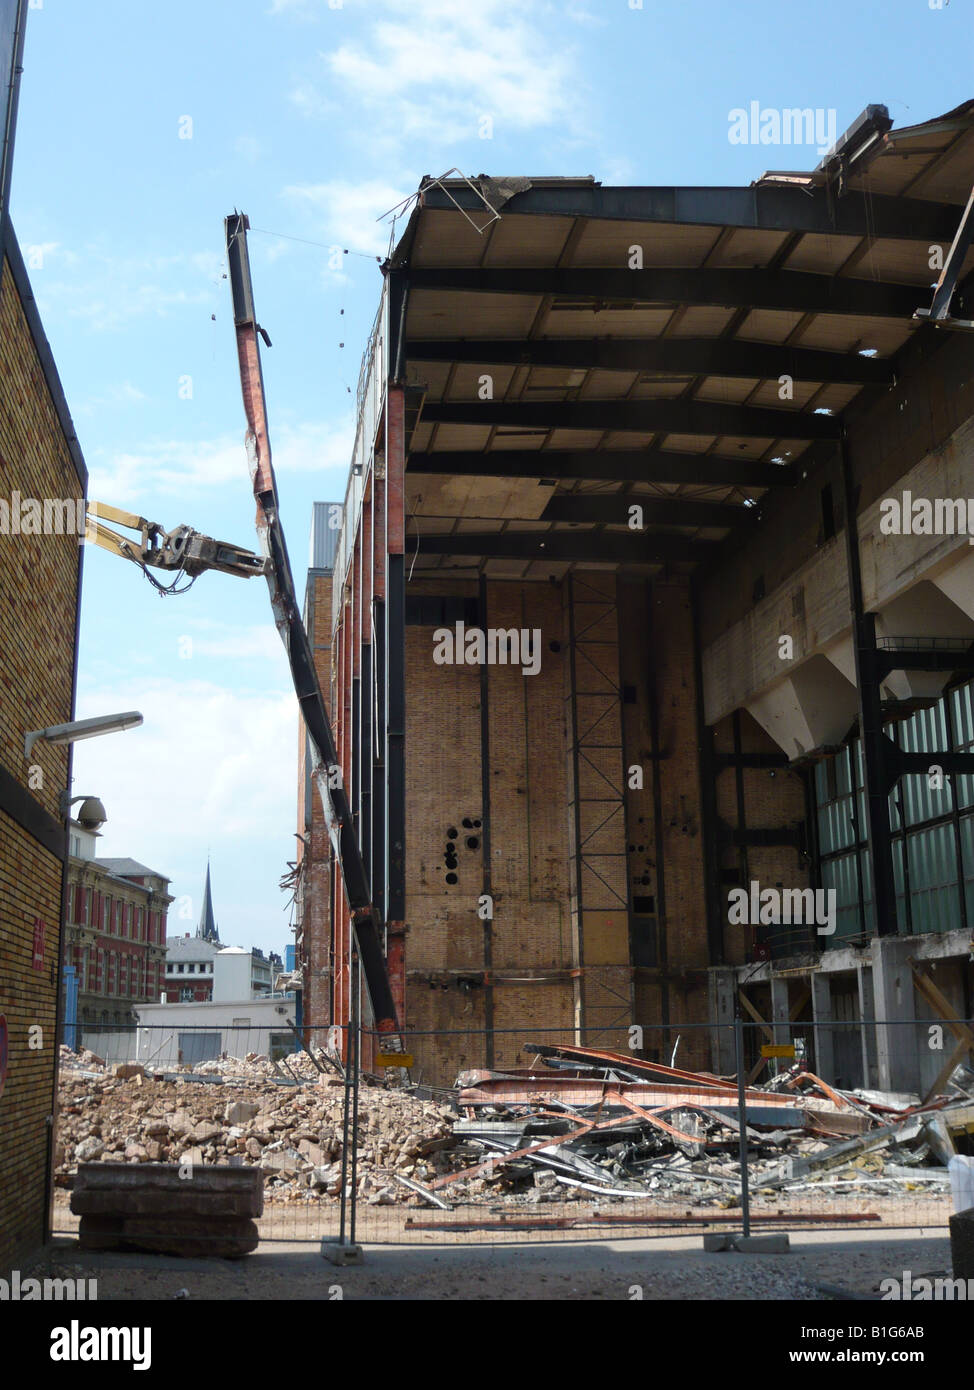 Demolition of the old cogeneration plant at Darmstadt University. The space will be used for a new library. - Stock Image